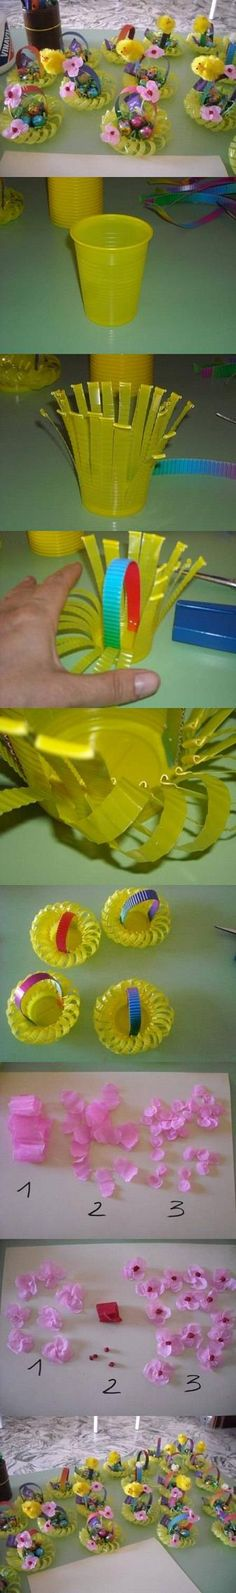 DIY Plastic Cup Flower Basket DIY Projects | UsefulDIY.com